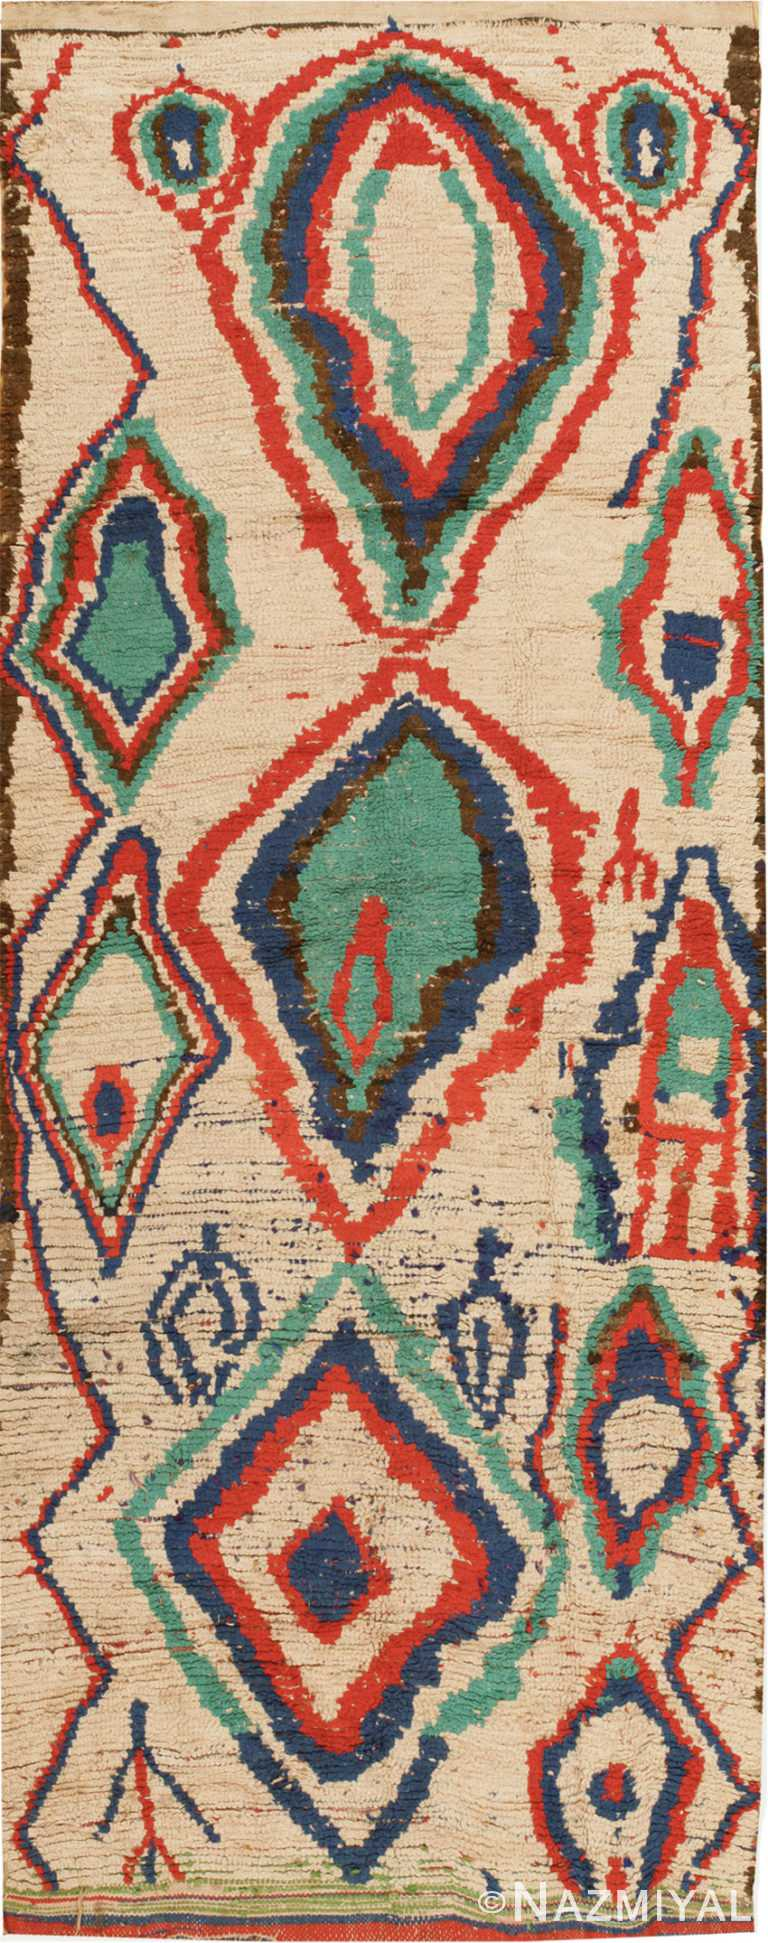 Mid Century Colorful Vintage Moroccan Rug #46515 by Nazmiyal Antique Rugs